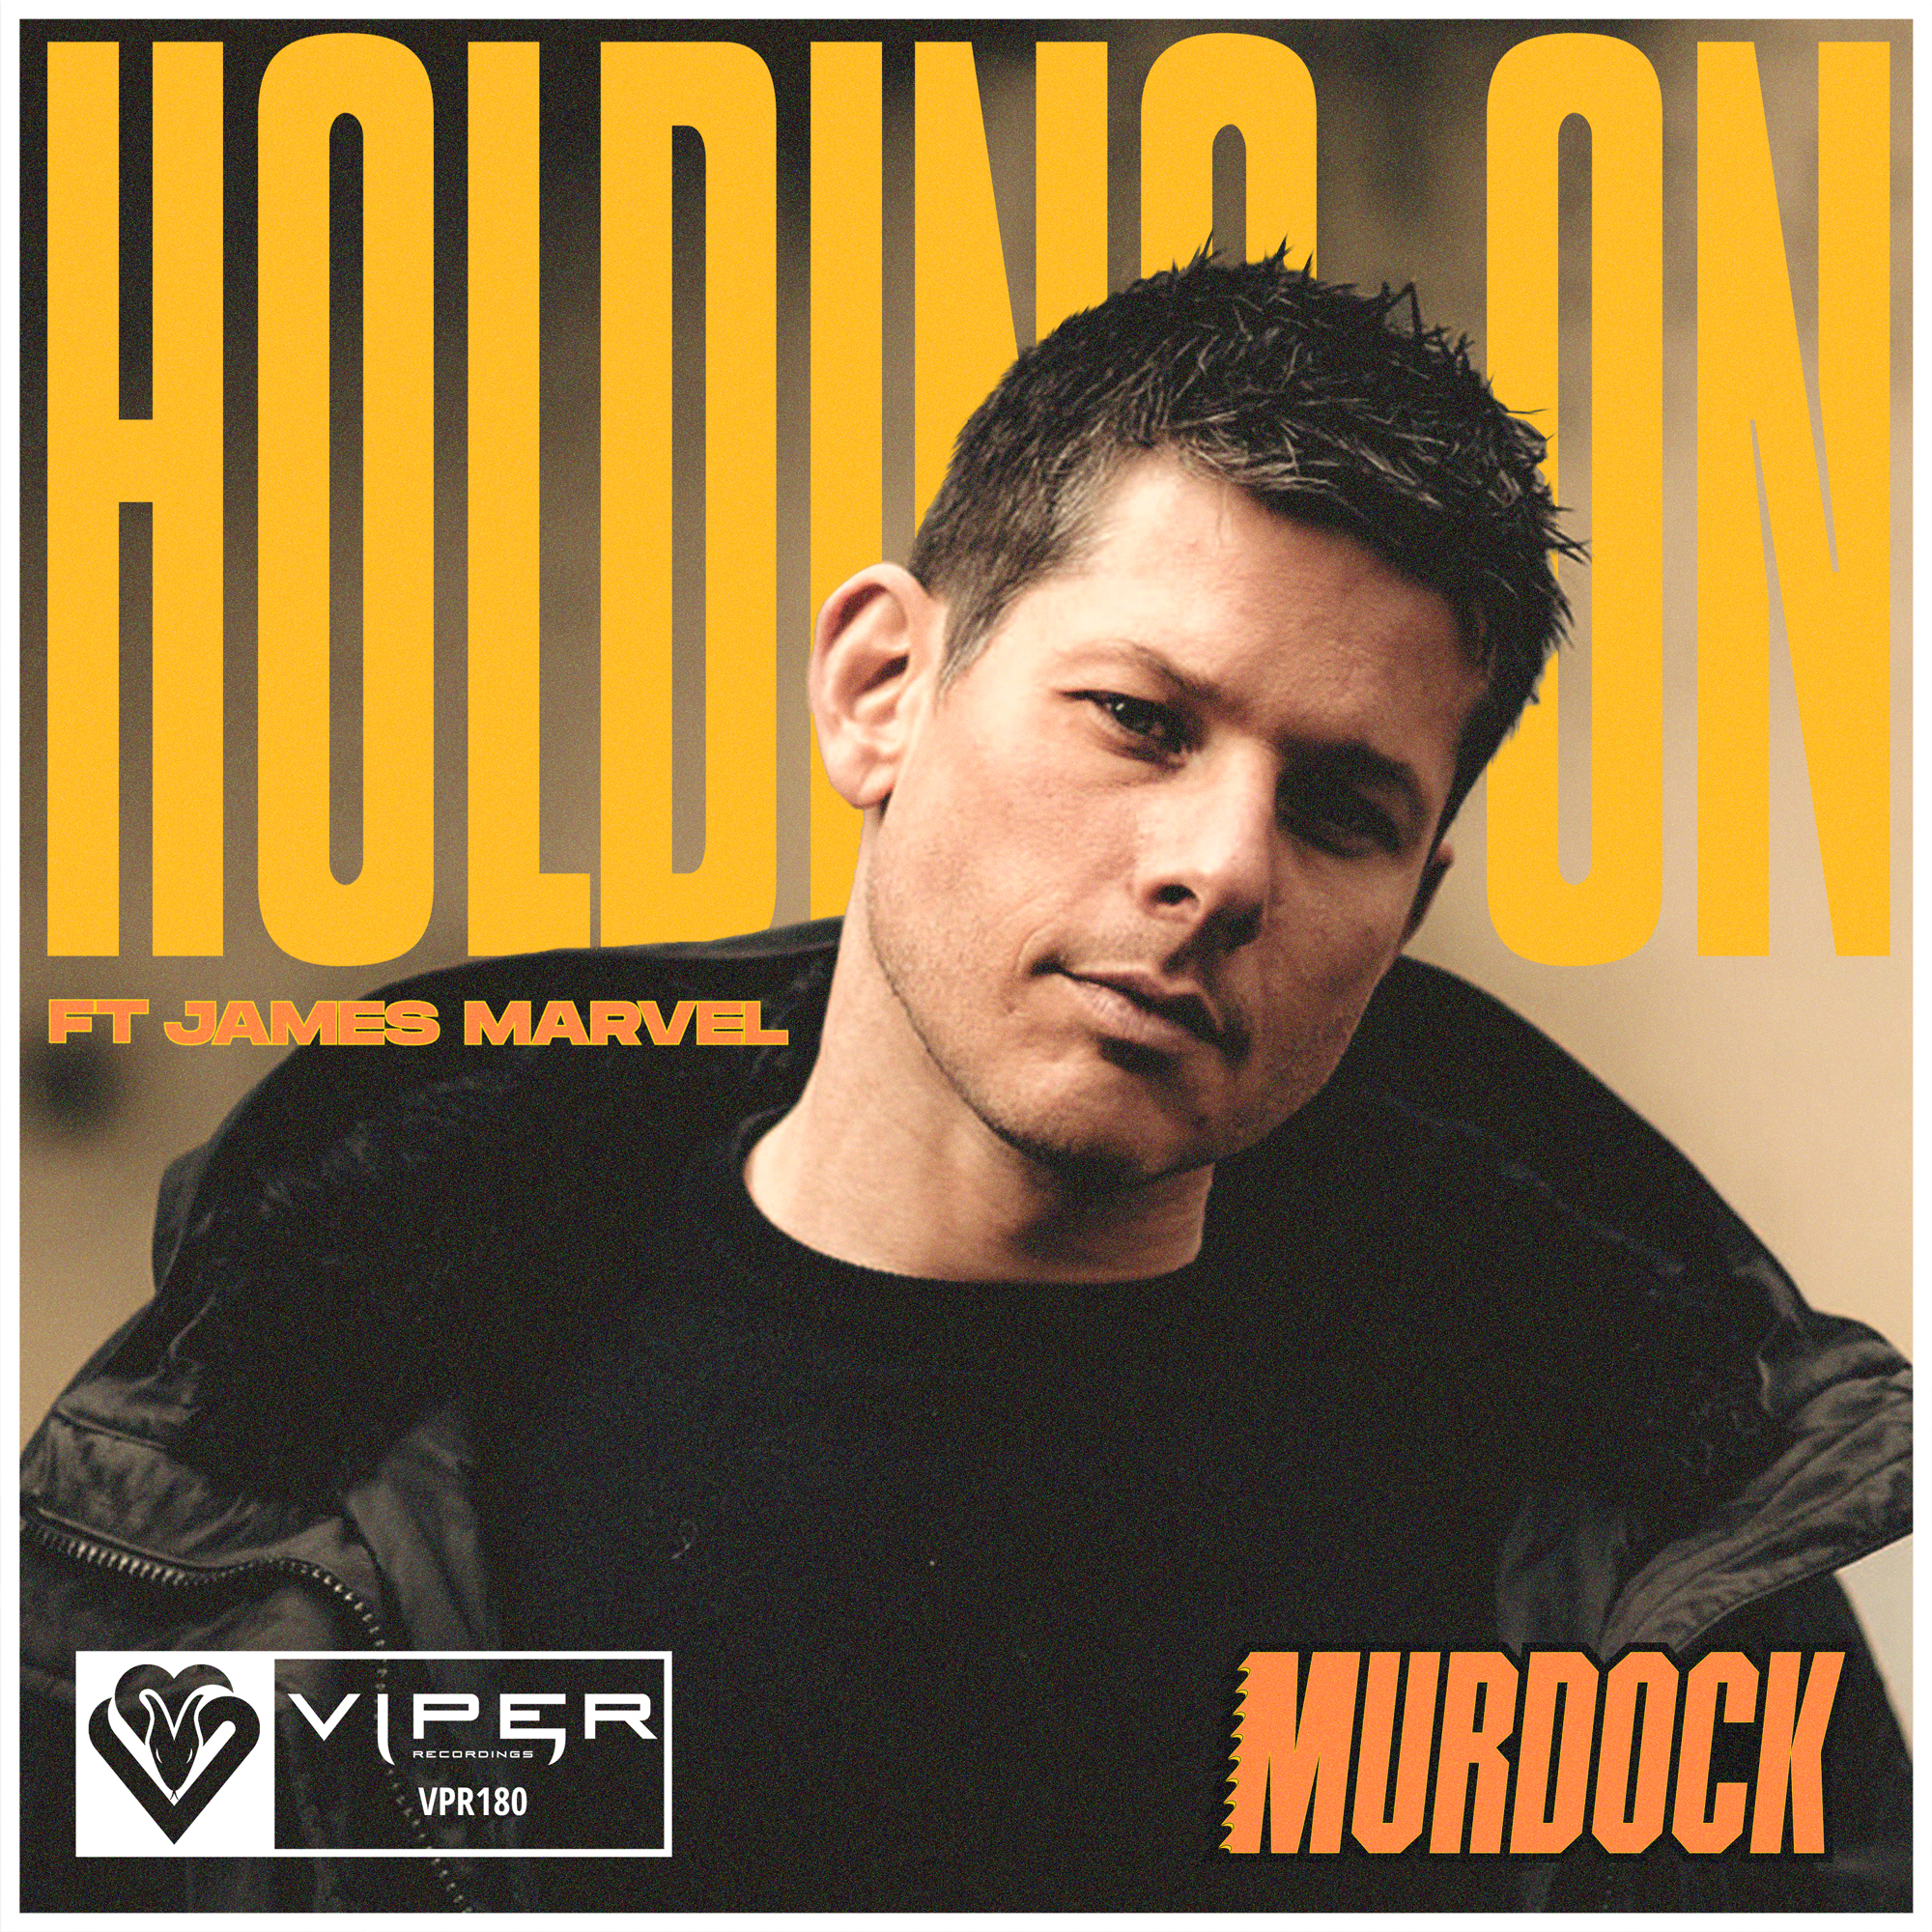 Murdock - Holding On ft. James Marvel